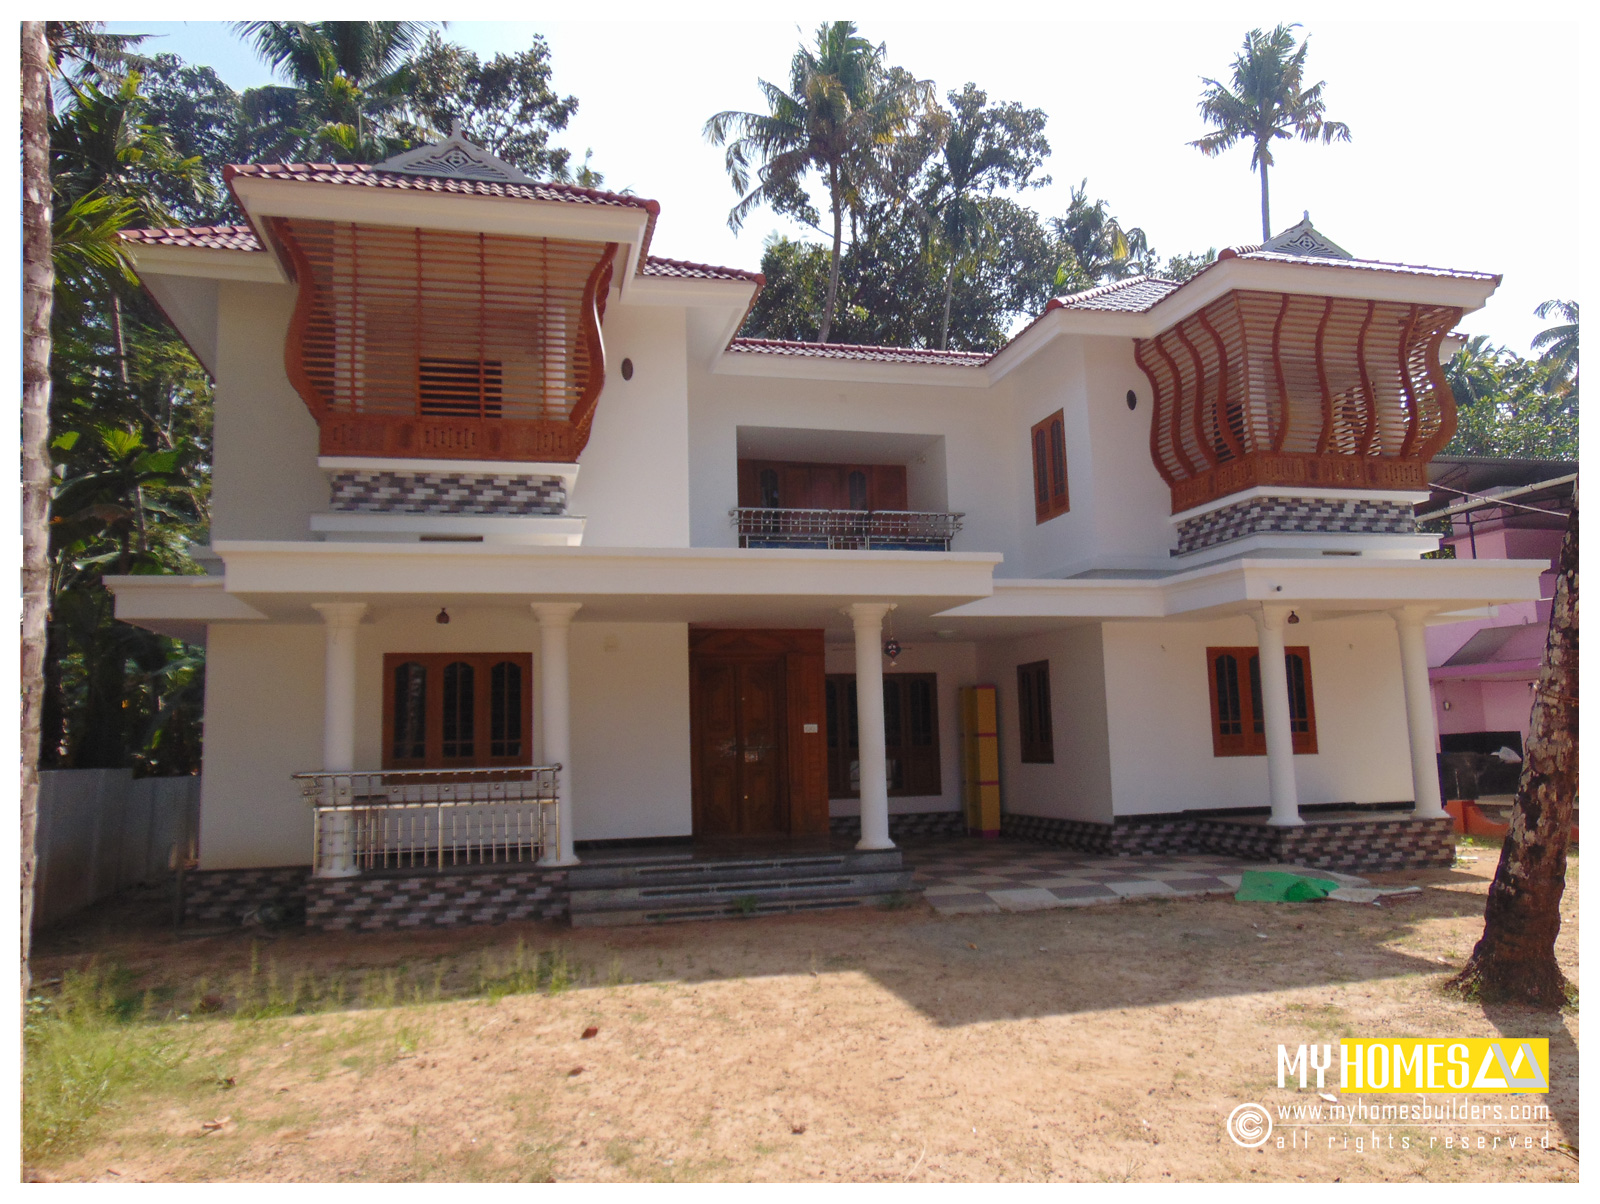 Kerala Traditional Home Design Modern Kerala Home Design Keral Best Homes  Designs